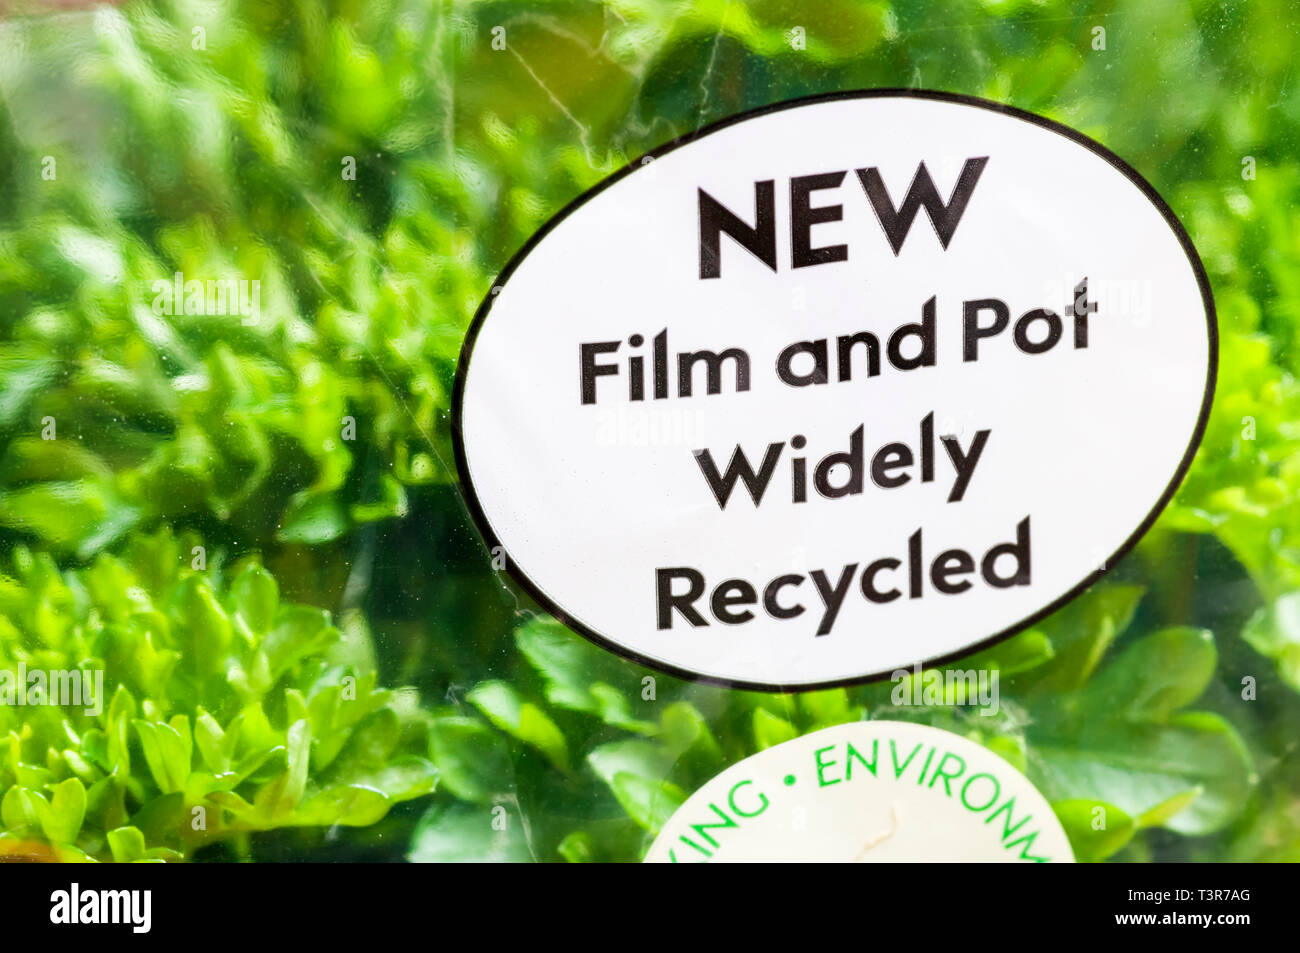 Recycling instructions on pot of Curly Leafed Parsley read Film and Pot Widely Recycled. - Stock Image